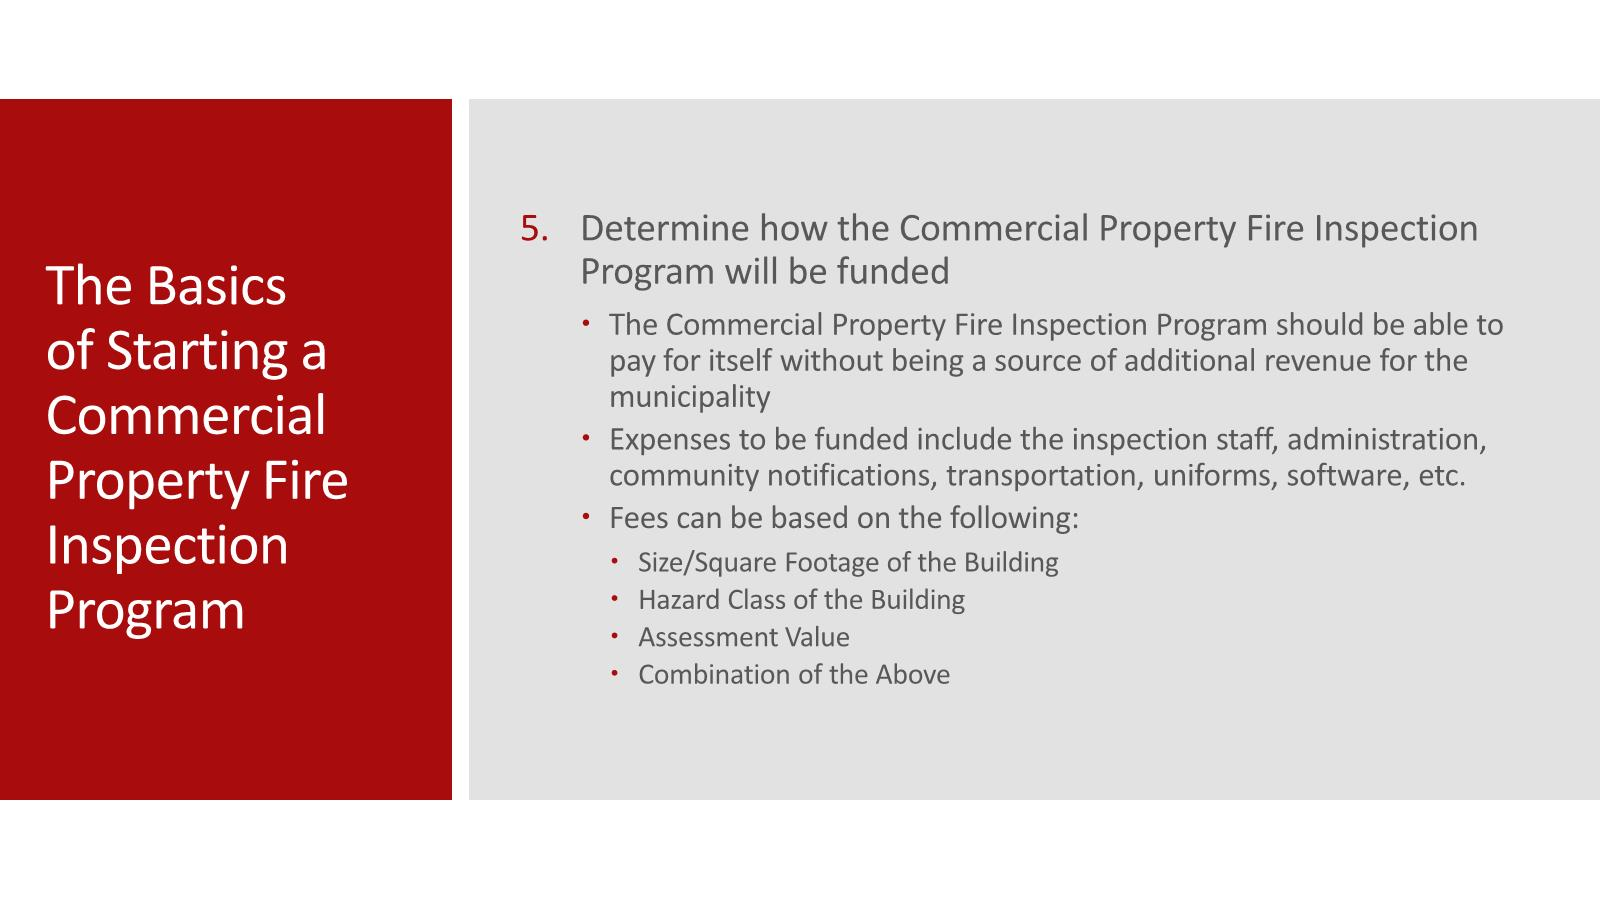 Commercial-Property-Fire-Inspections Page 021.jpg